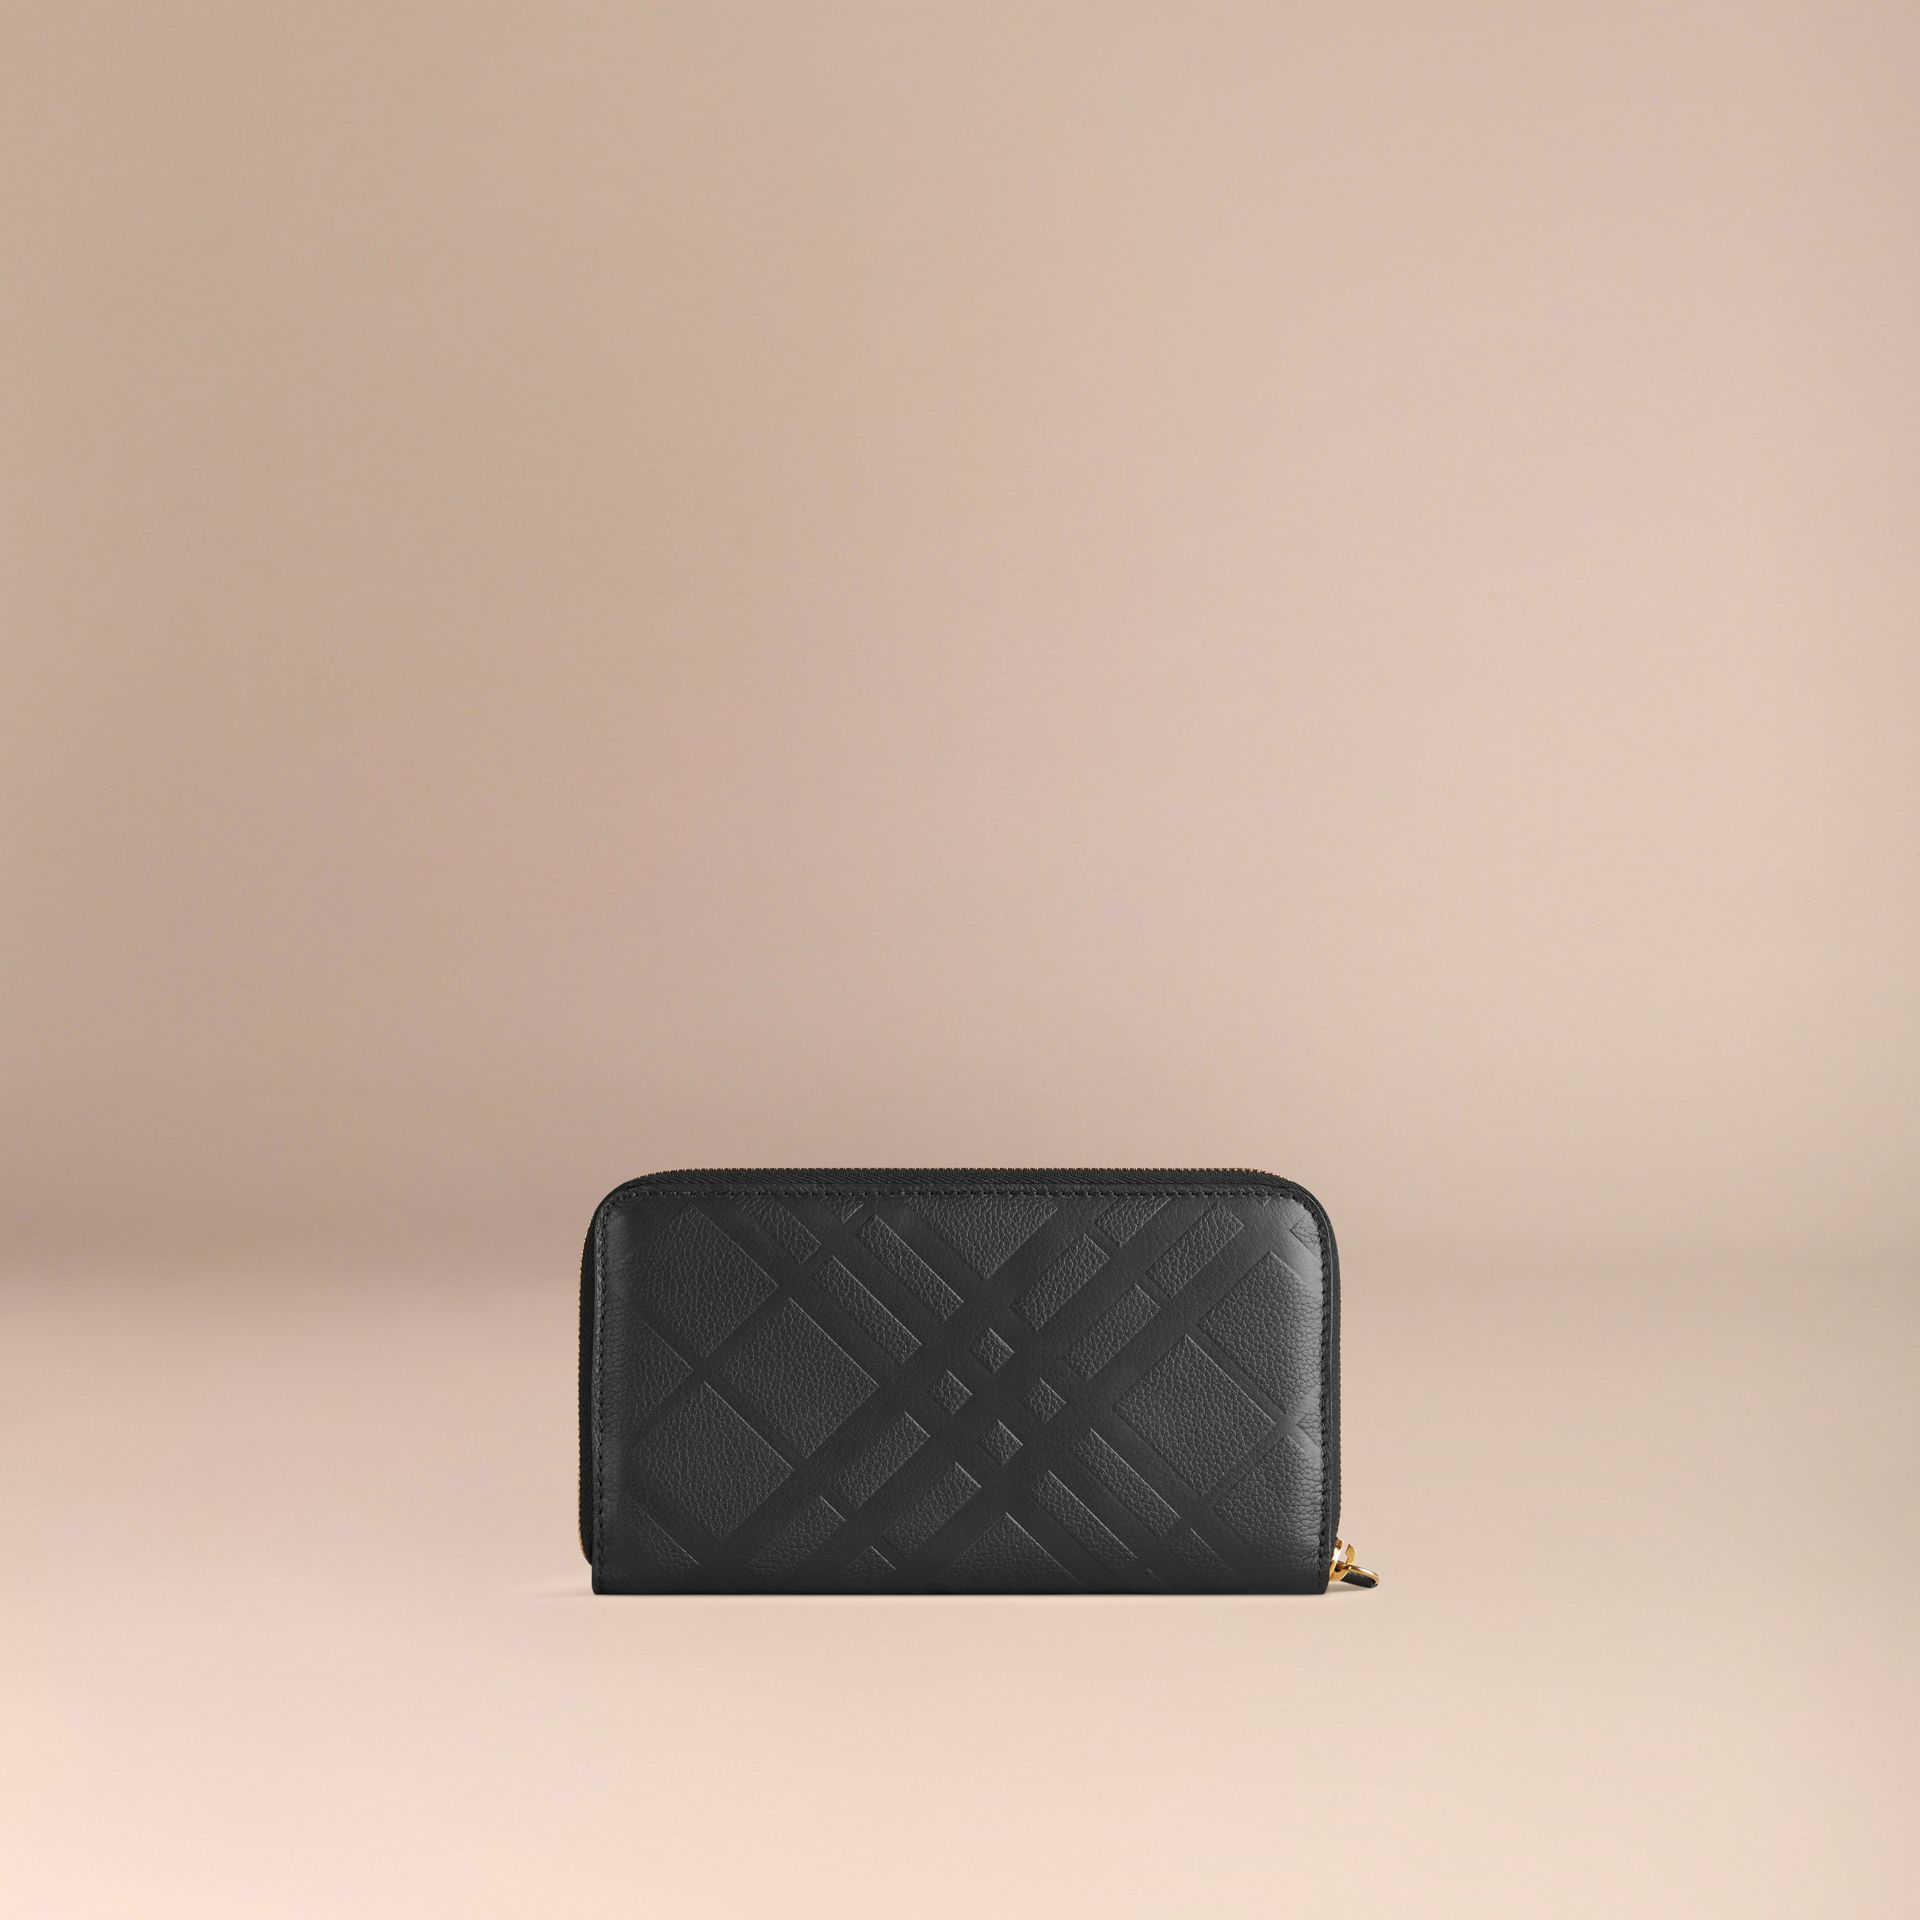 Black Embossed Check Leather Ziparound Wallet Black - gallery image 3